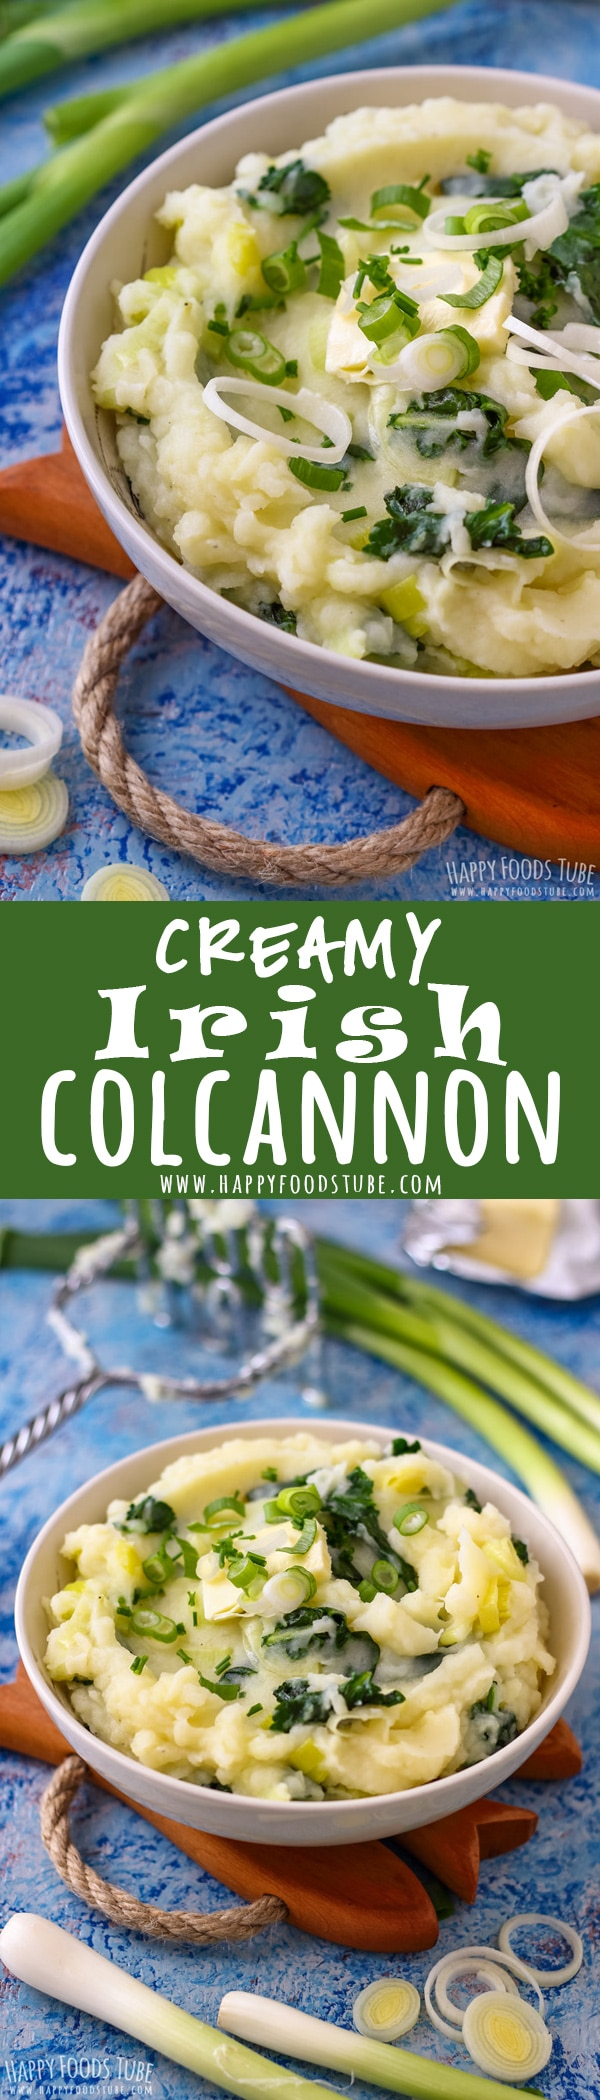 Bring your potato mash to a whole new level by turning it into creamy Irish Colcannon. This is the perfect potato side dish. #colcannon #kale #recipe #irish #food #cooking #vegetarian #patricksday #sidedish #eire #ireland #traditional #potatoes #mash #authentic